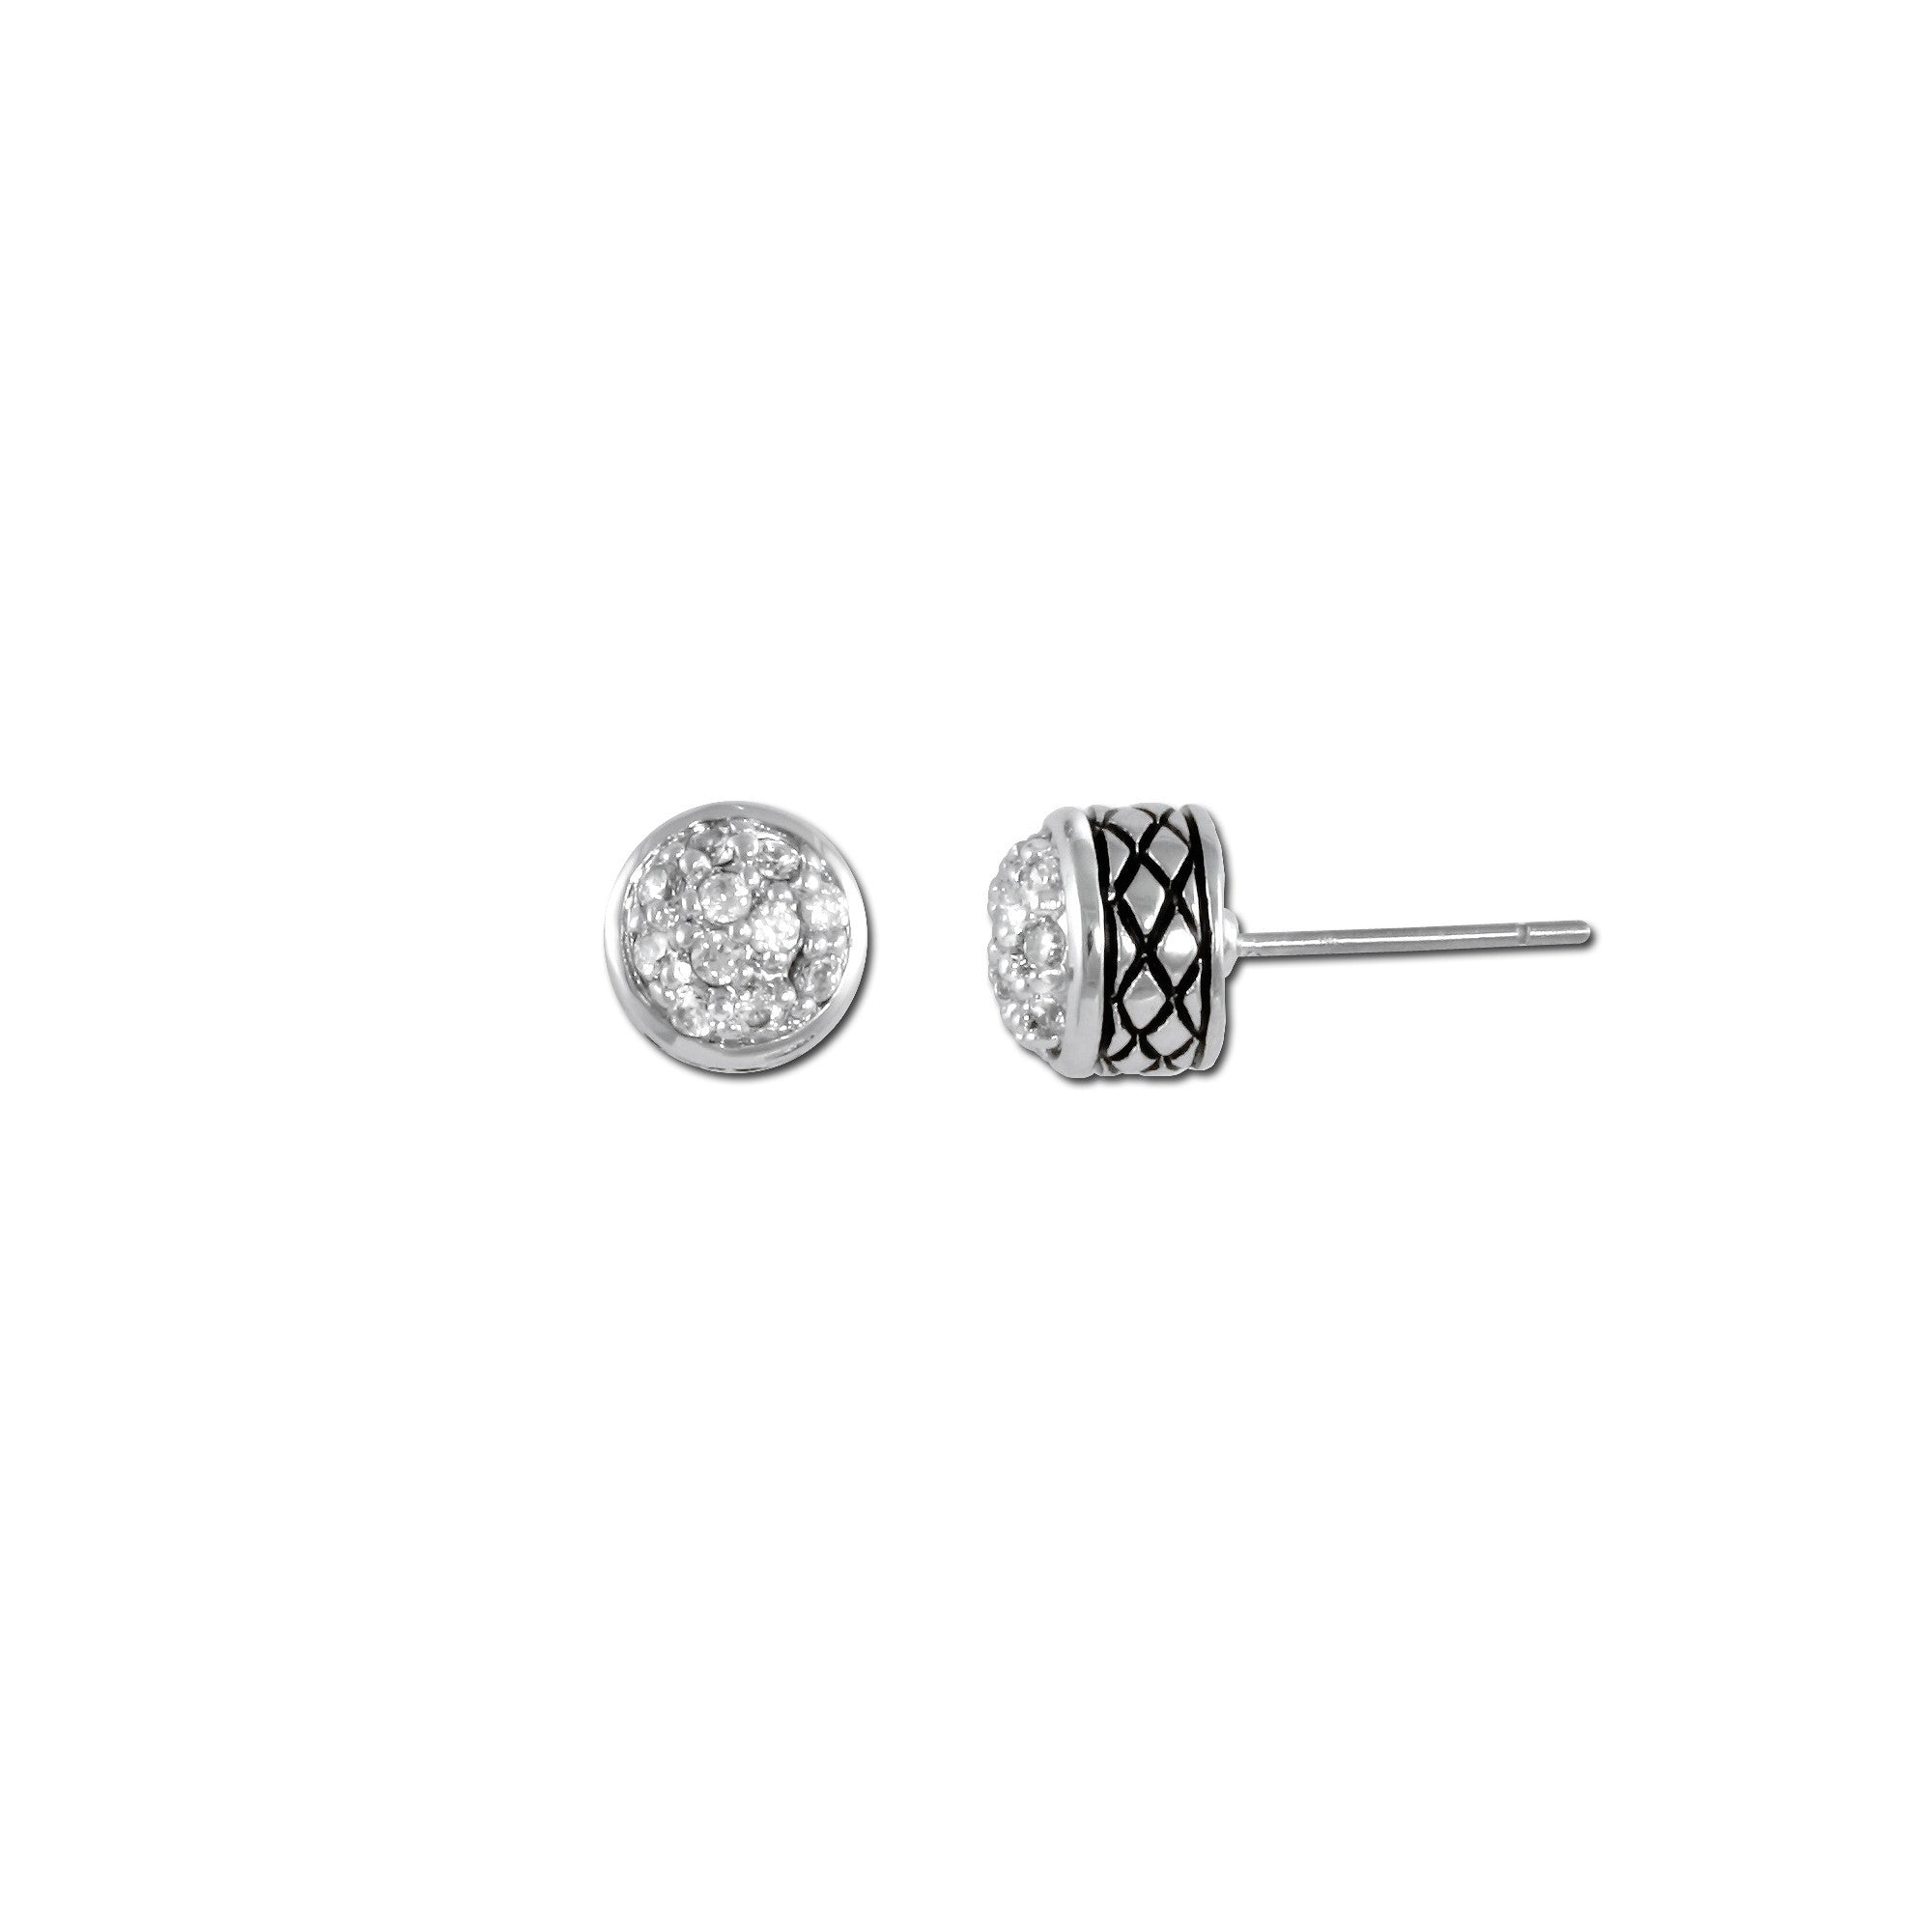 Weave Pavé Stud Earrings